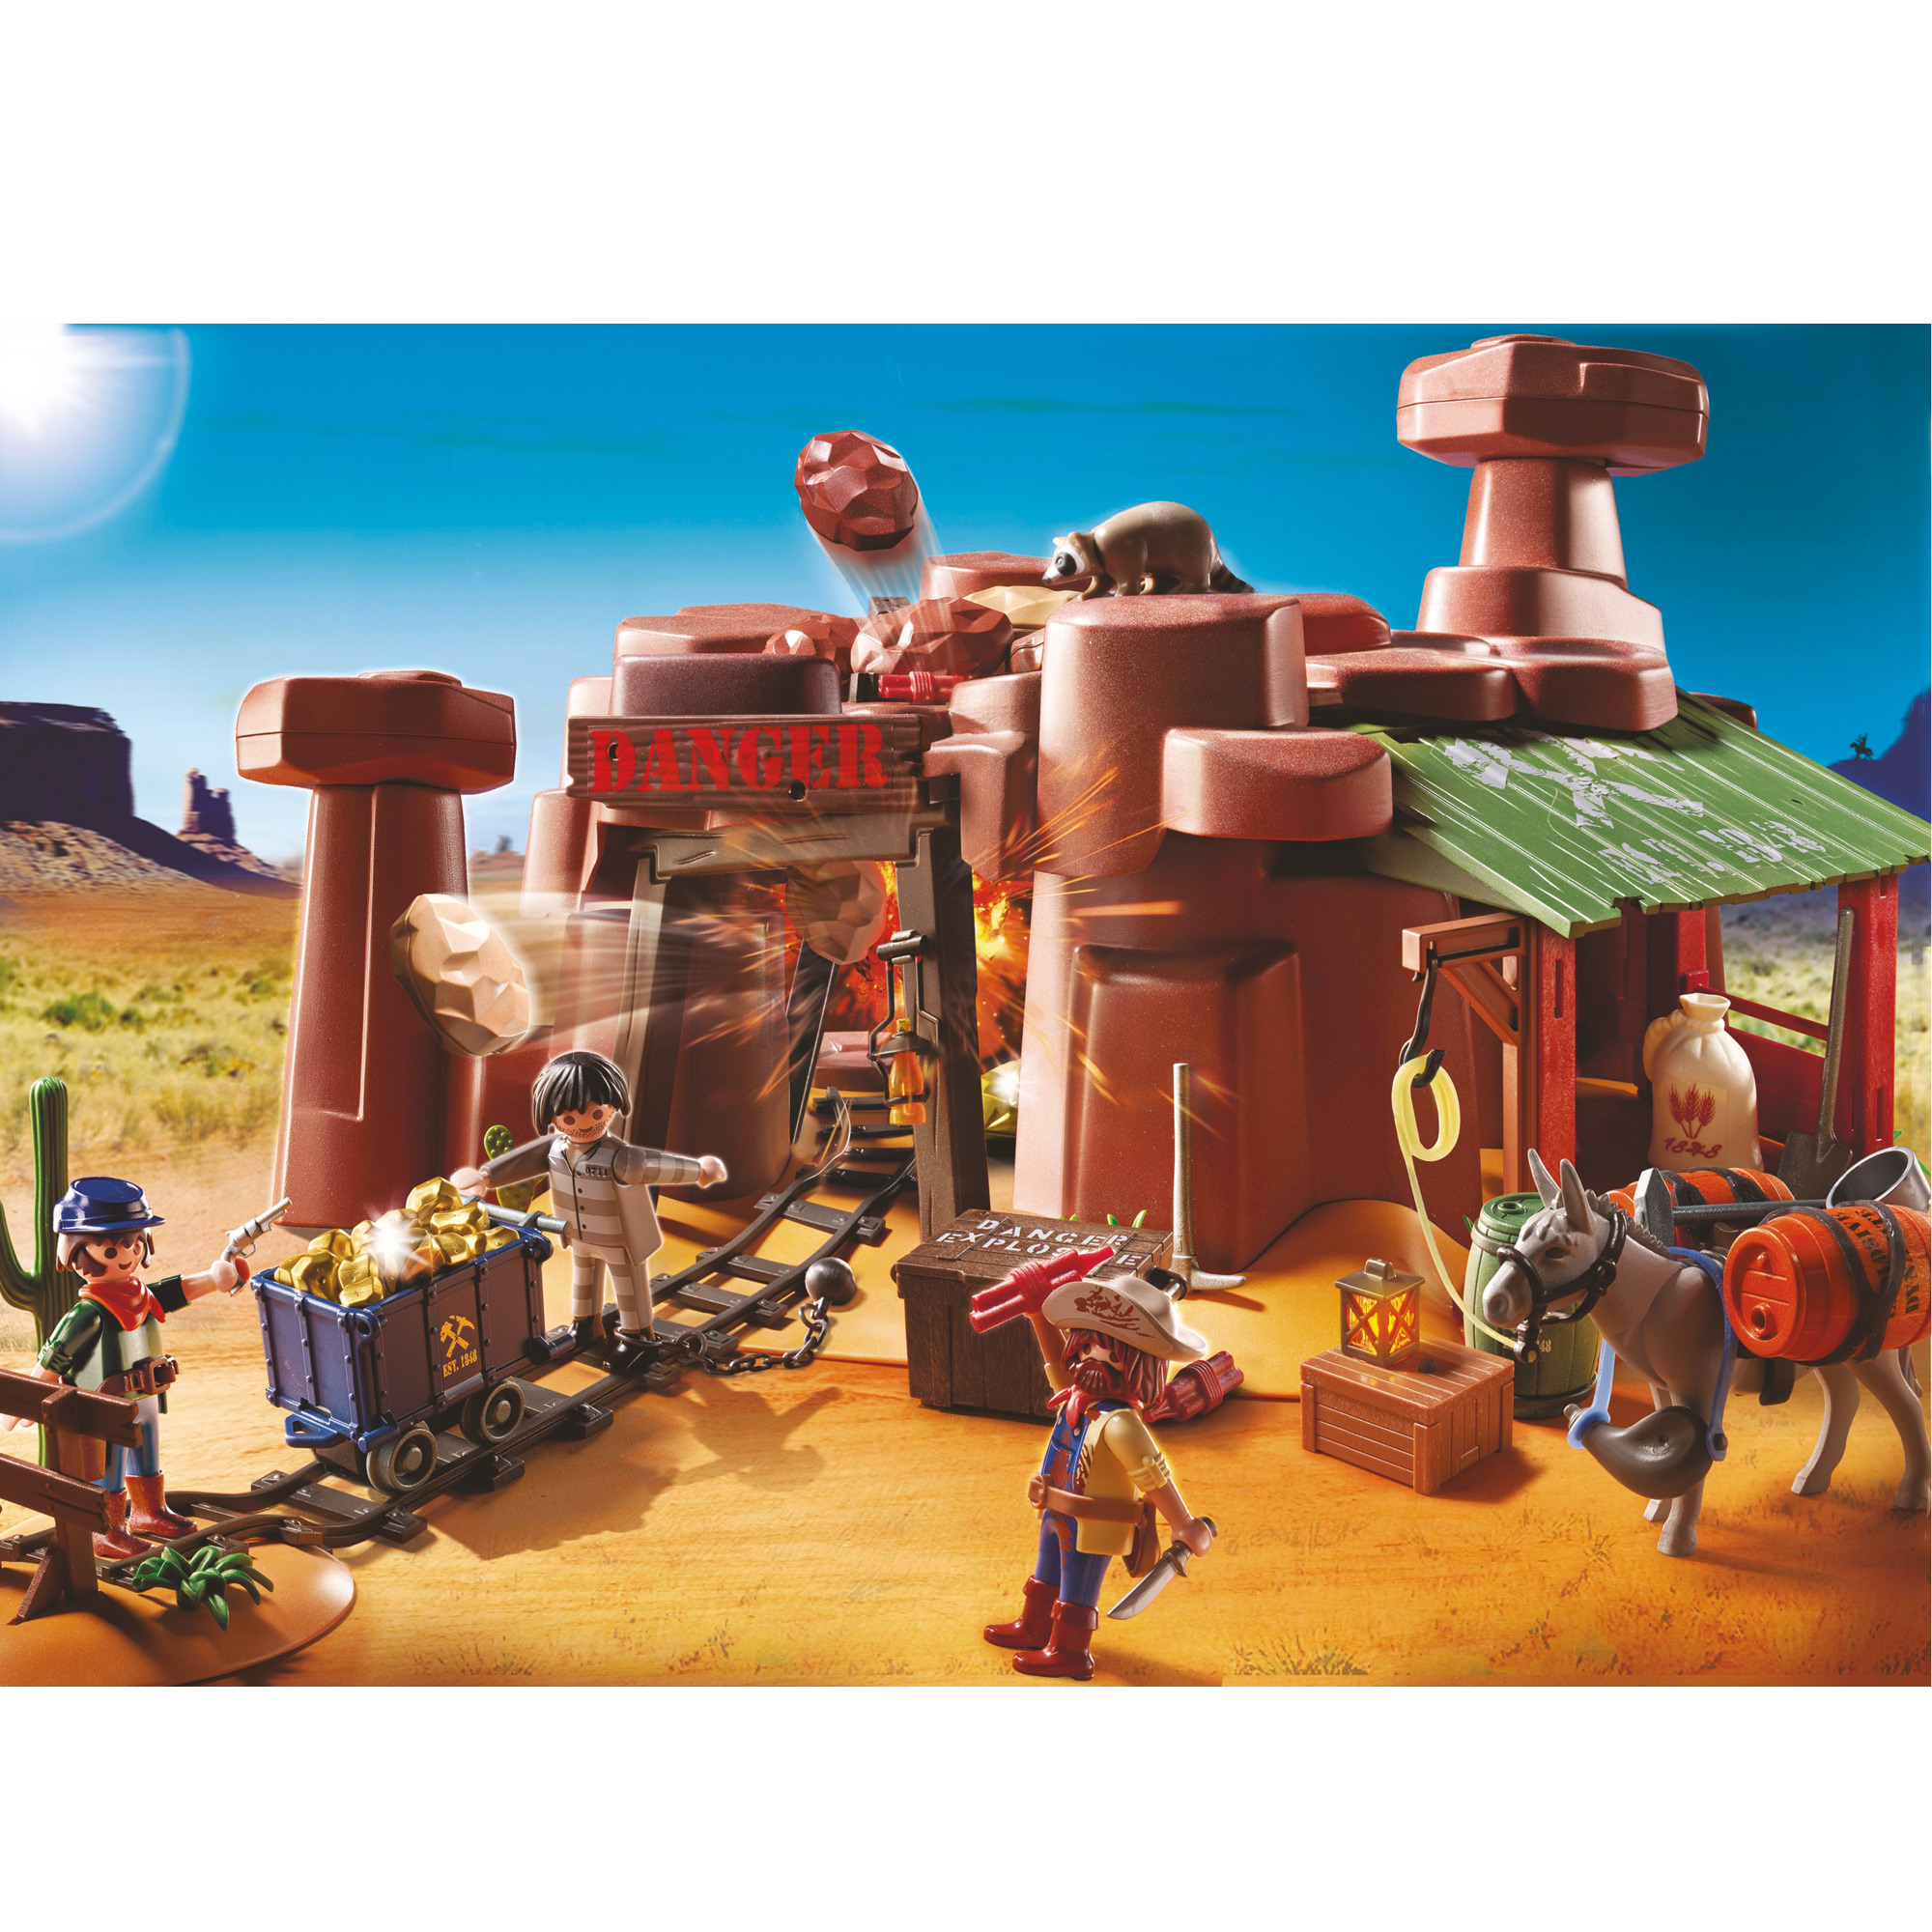 Mining Toys For Boys : Playmobil goldmine from the other range